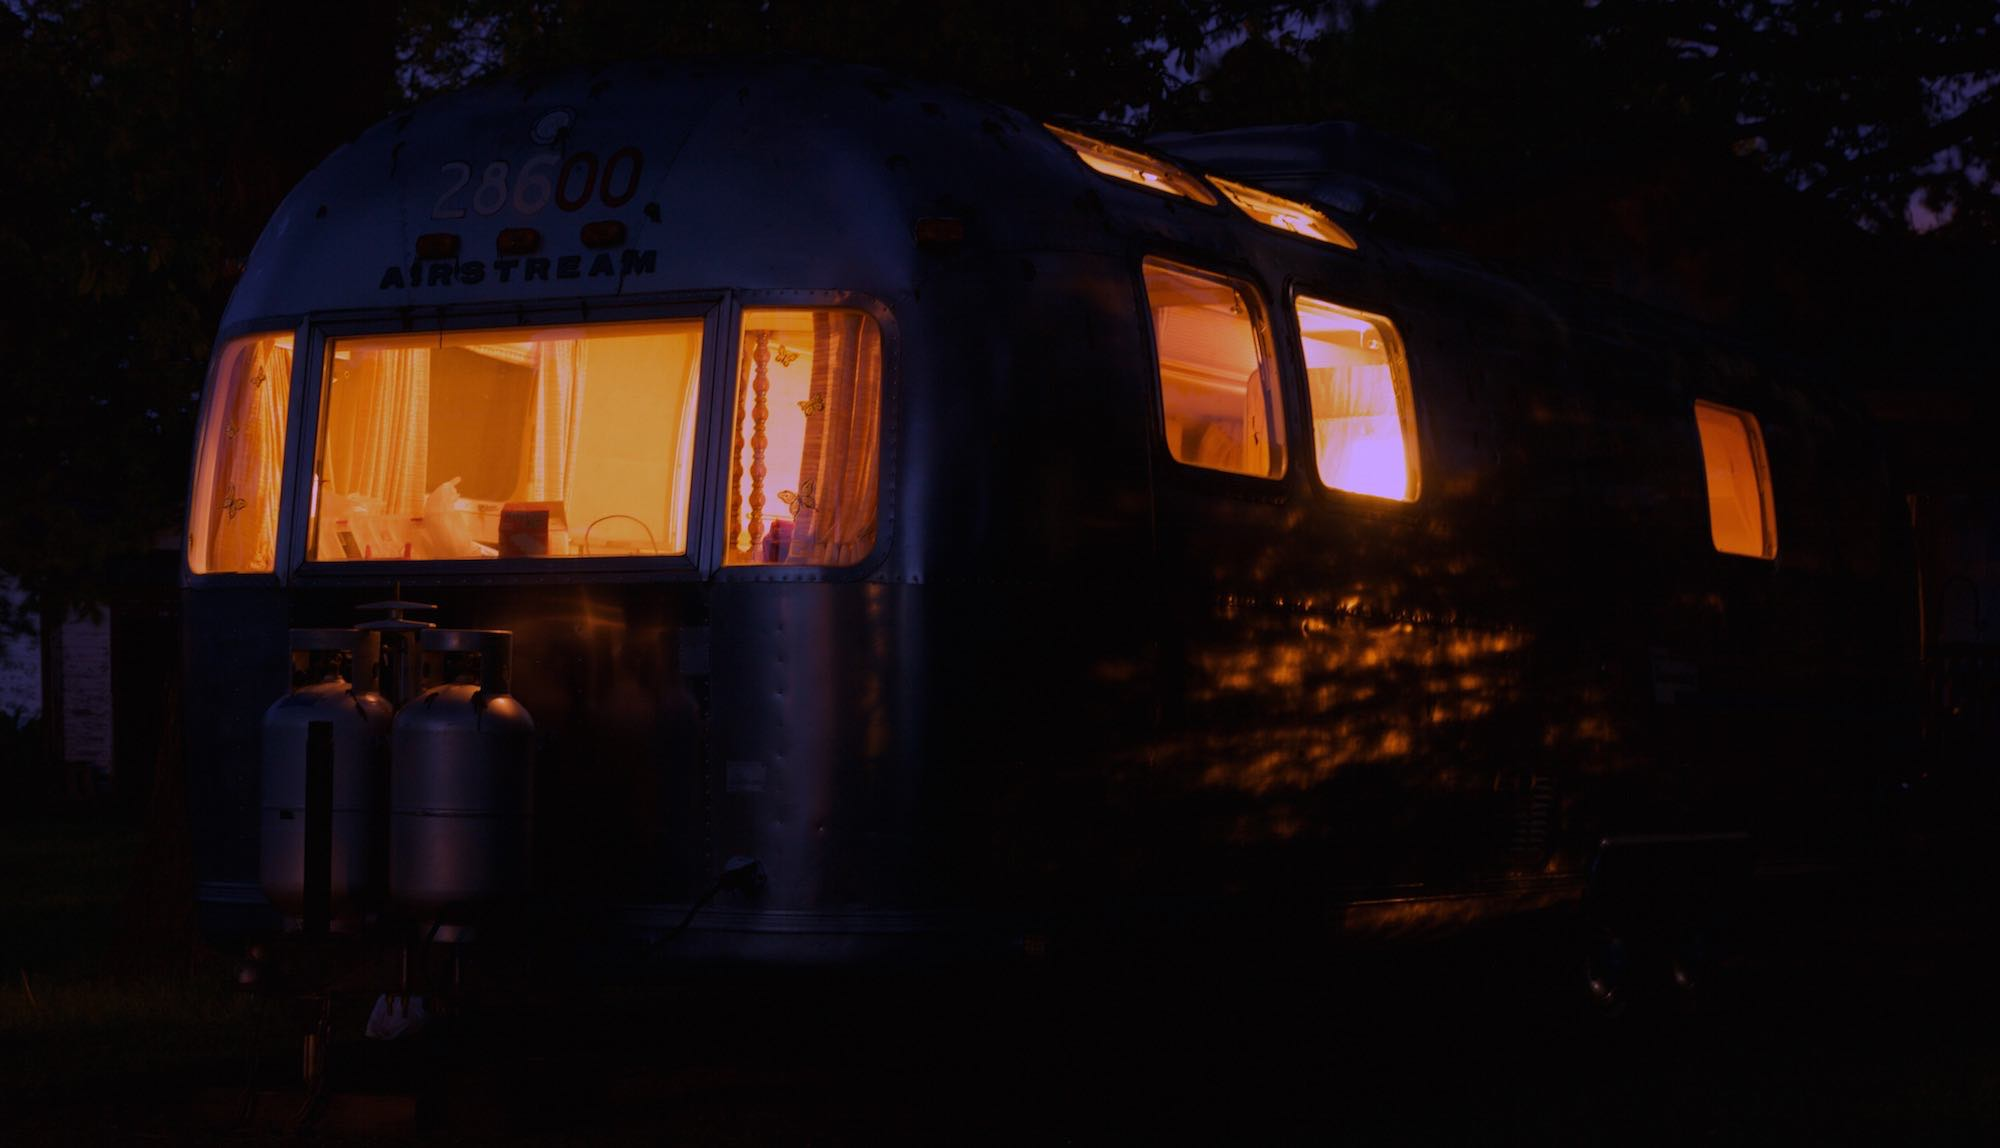 A night view of our Airstream camper.